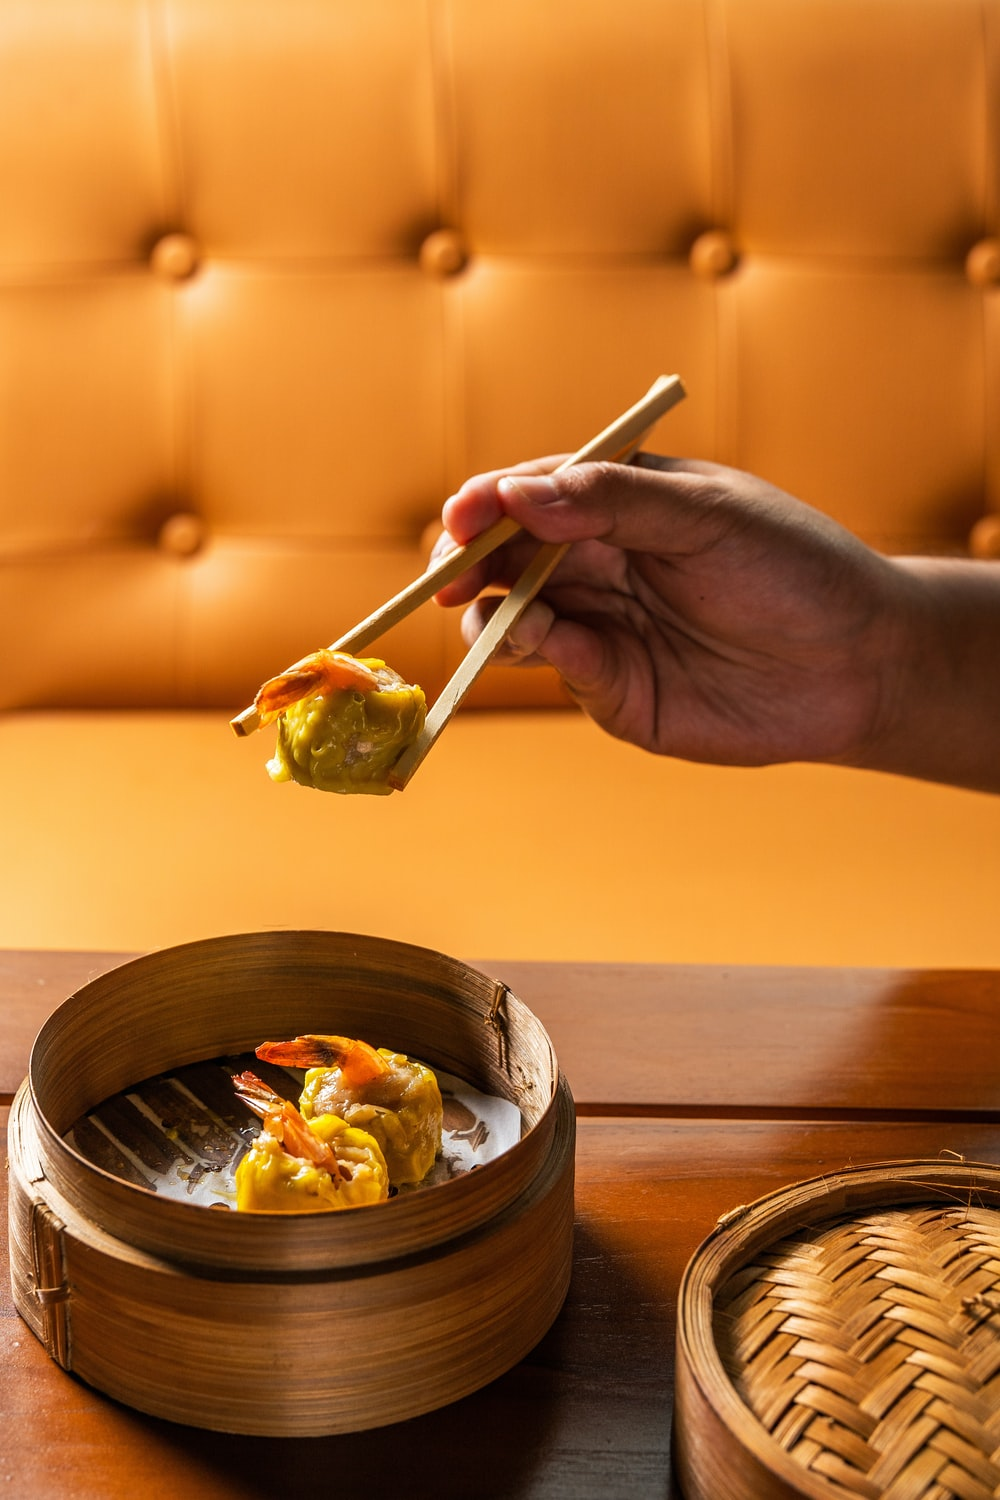 person holding chopsticks with vegetable salad in bowl